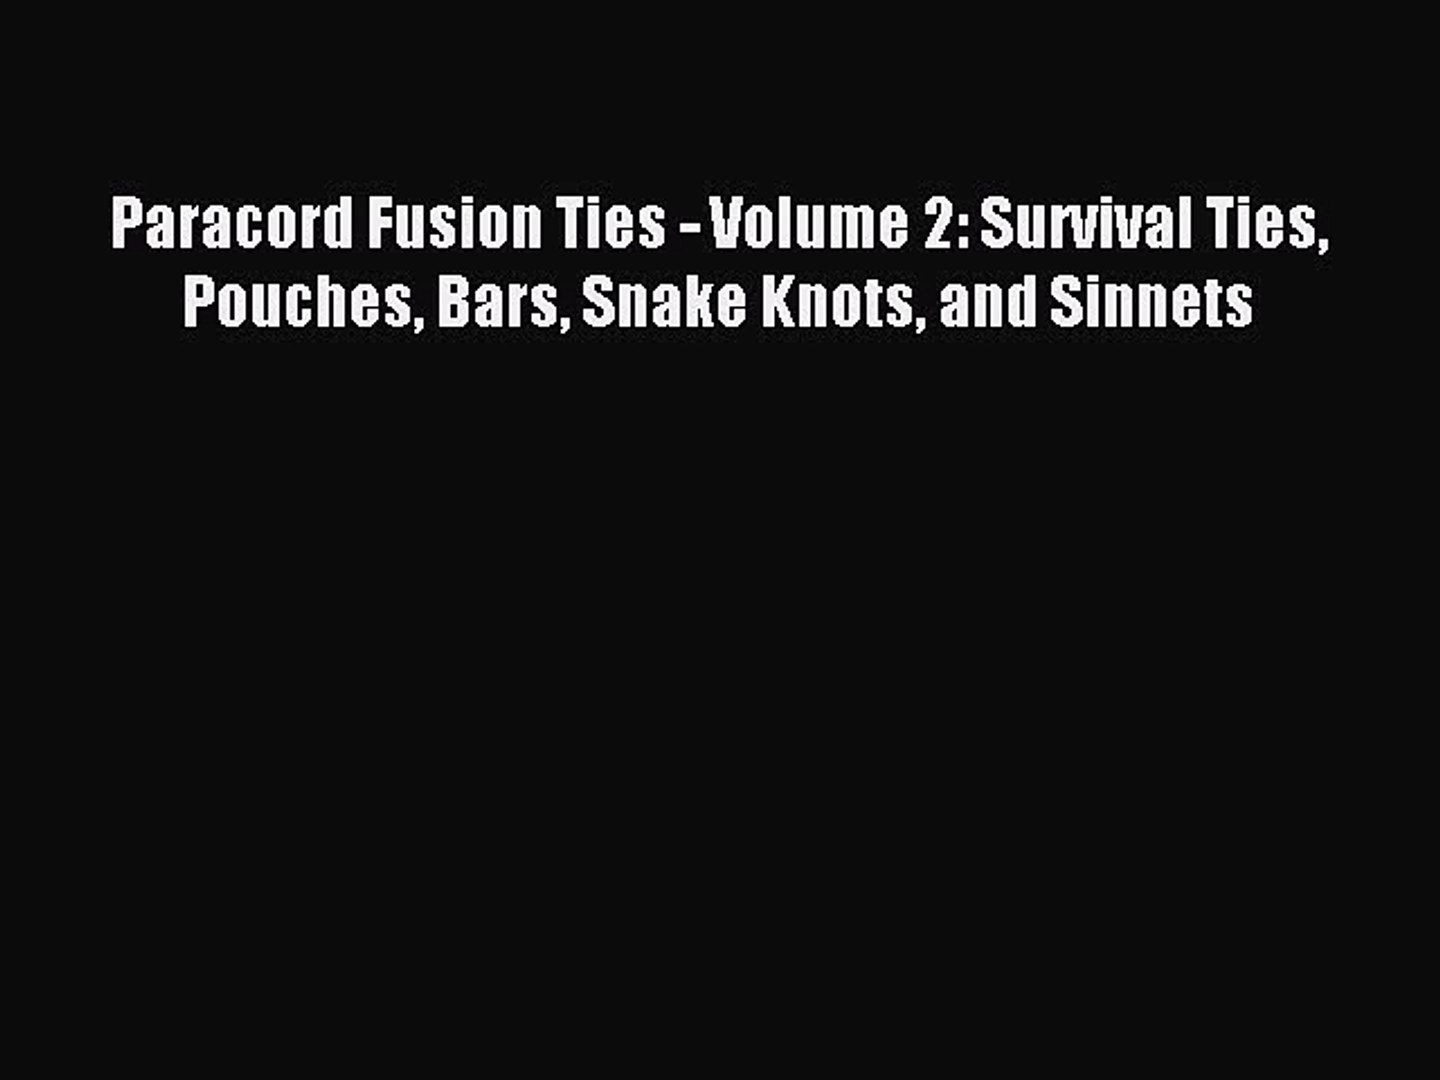 Read Paracord Fusion Ties - Volume 2: Survival Ties Pouches Bars Snake Knots and Sinnets Ebook